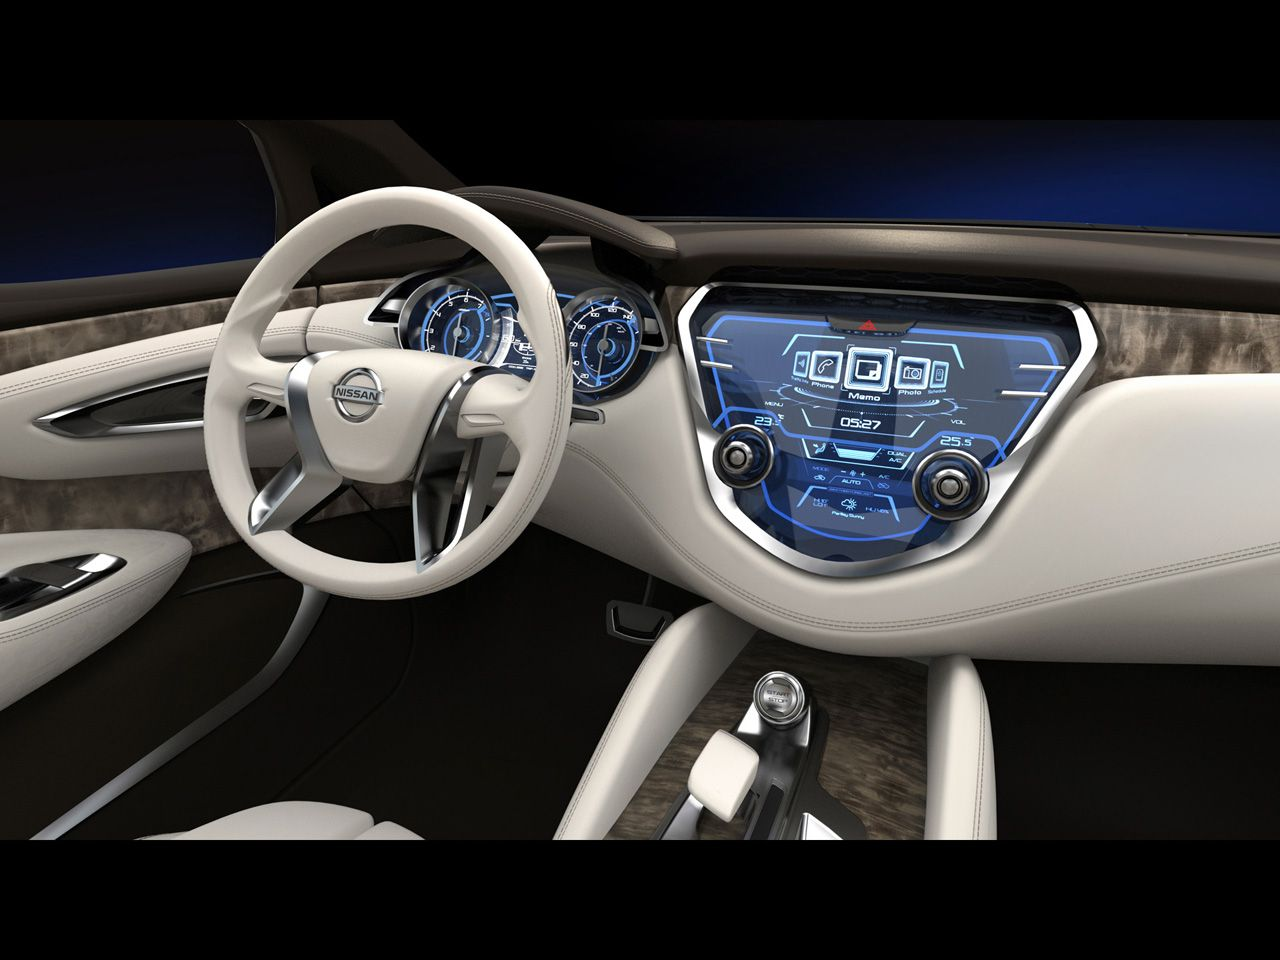 2013 nissan resonance concept dashboard 1280x960 wallpaper